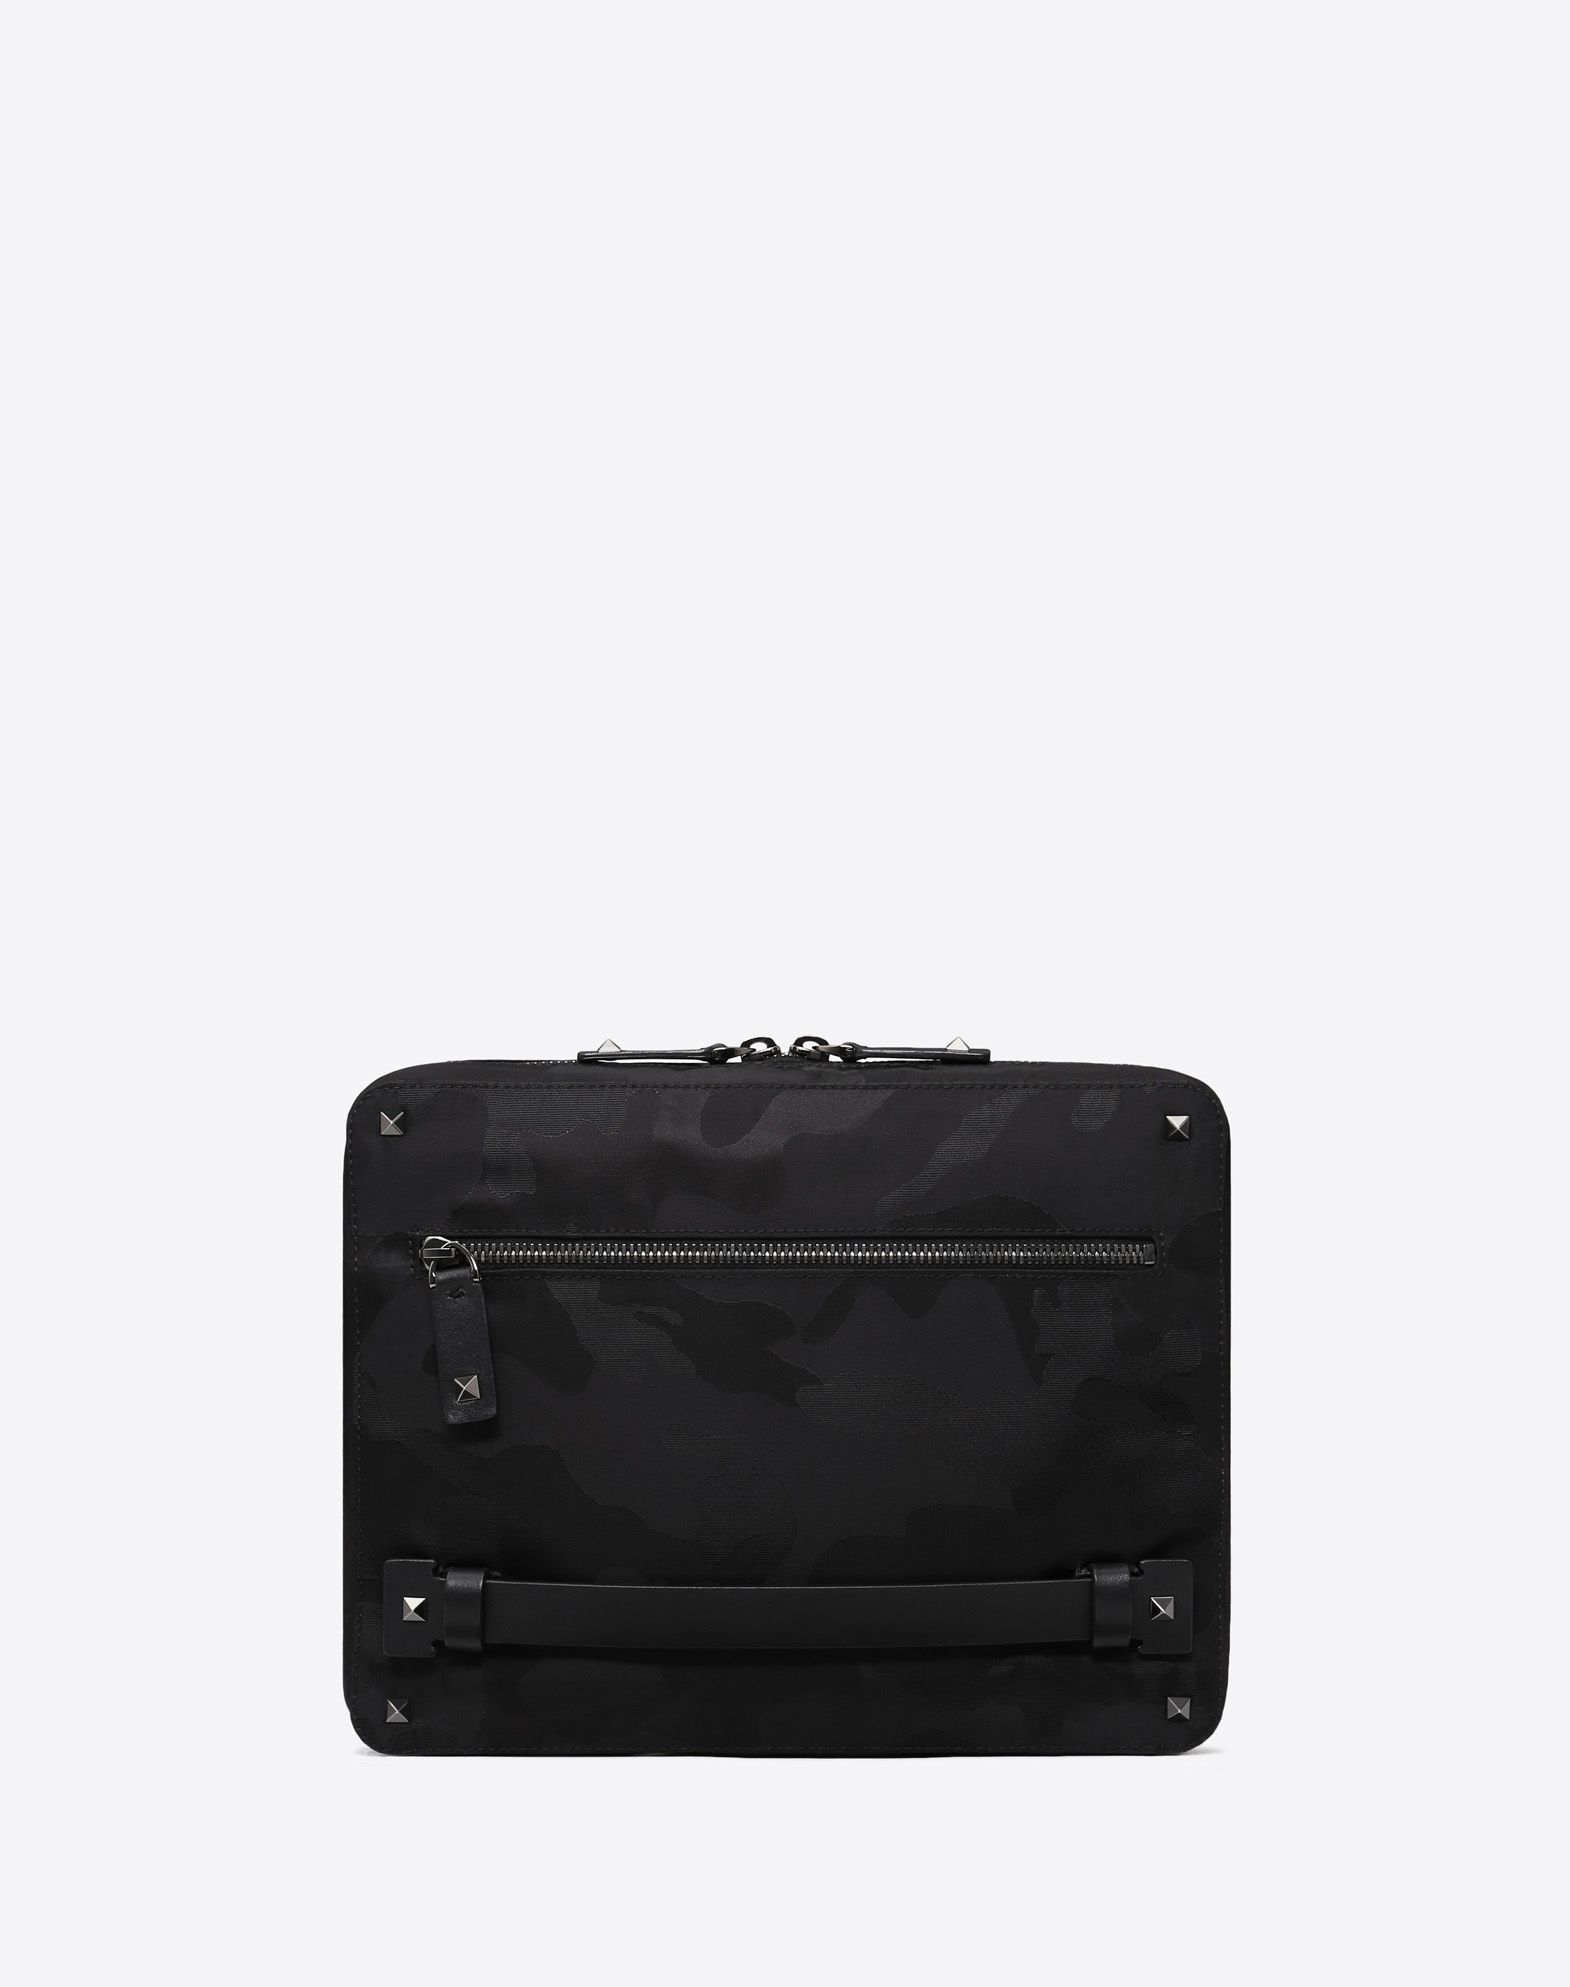 MEDIUM NYLON CAMOUFLAGE NOIR CLUTCH